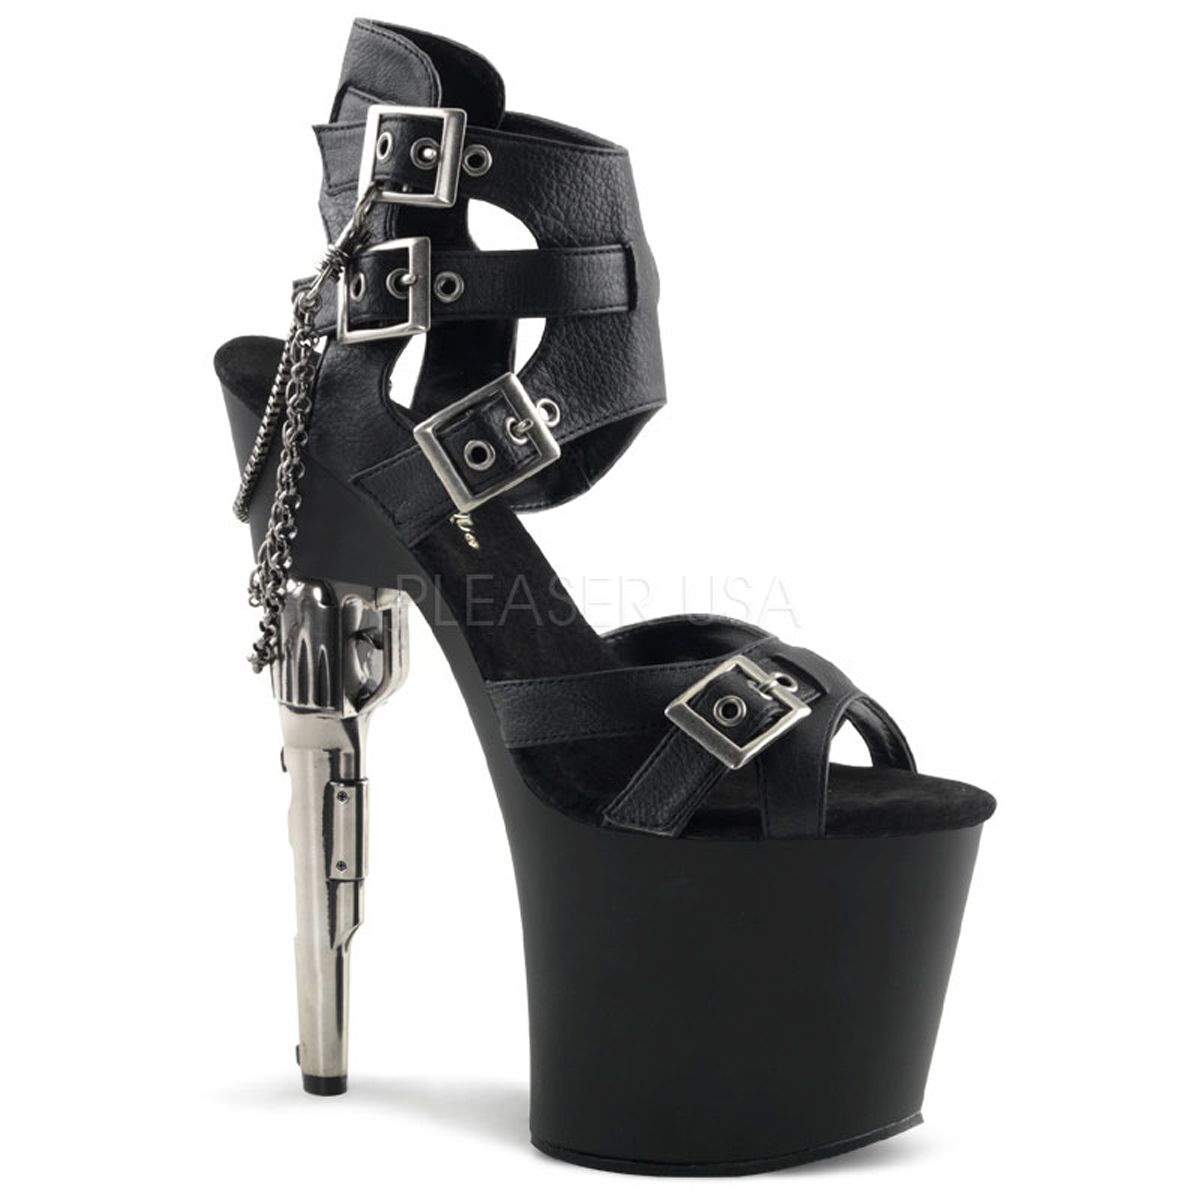 PLEASER Sexy Gun High Heels Strappy Black Buckling Platform Exotic Dancer  Shoes these are freakung amazing!